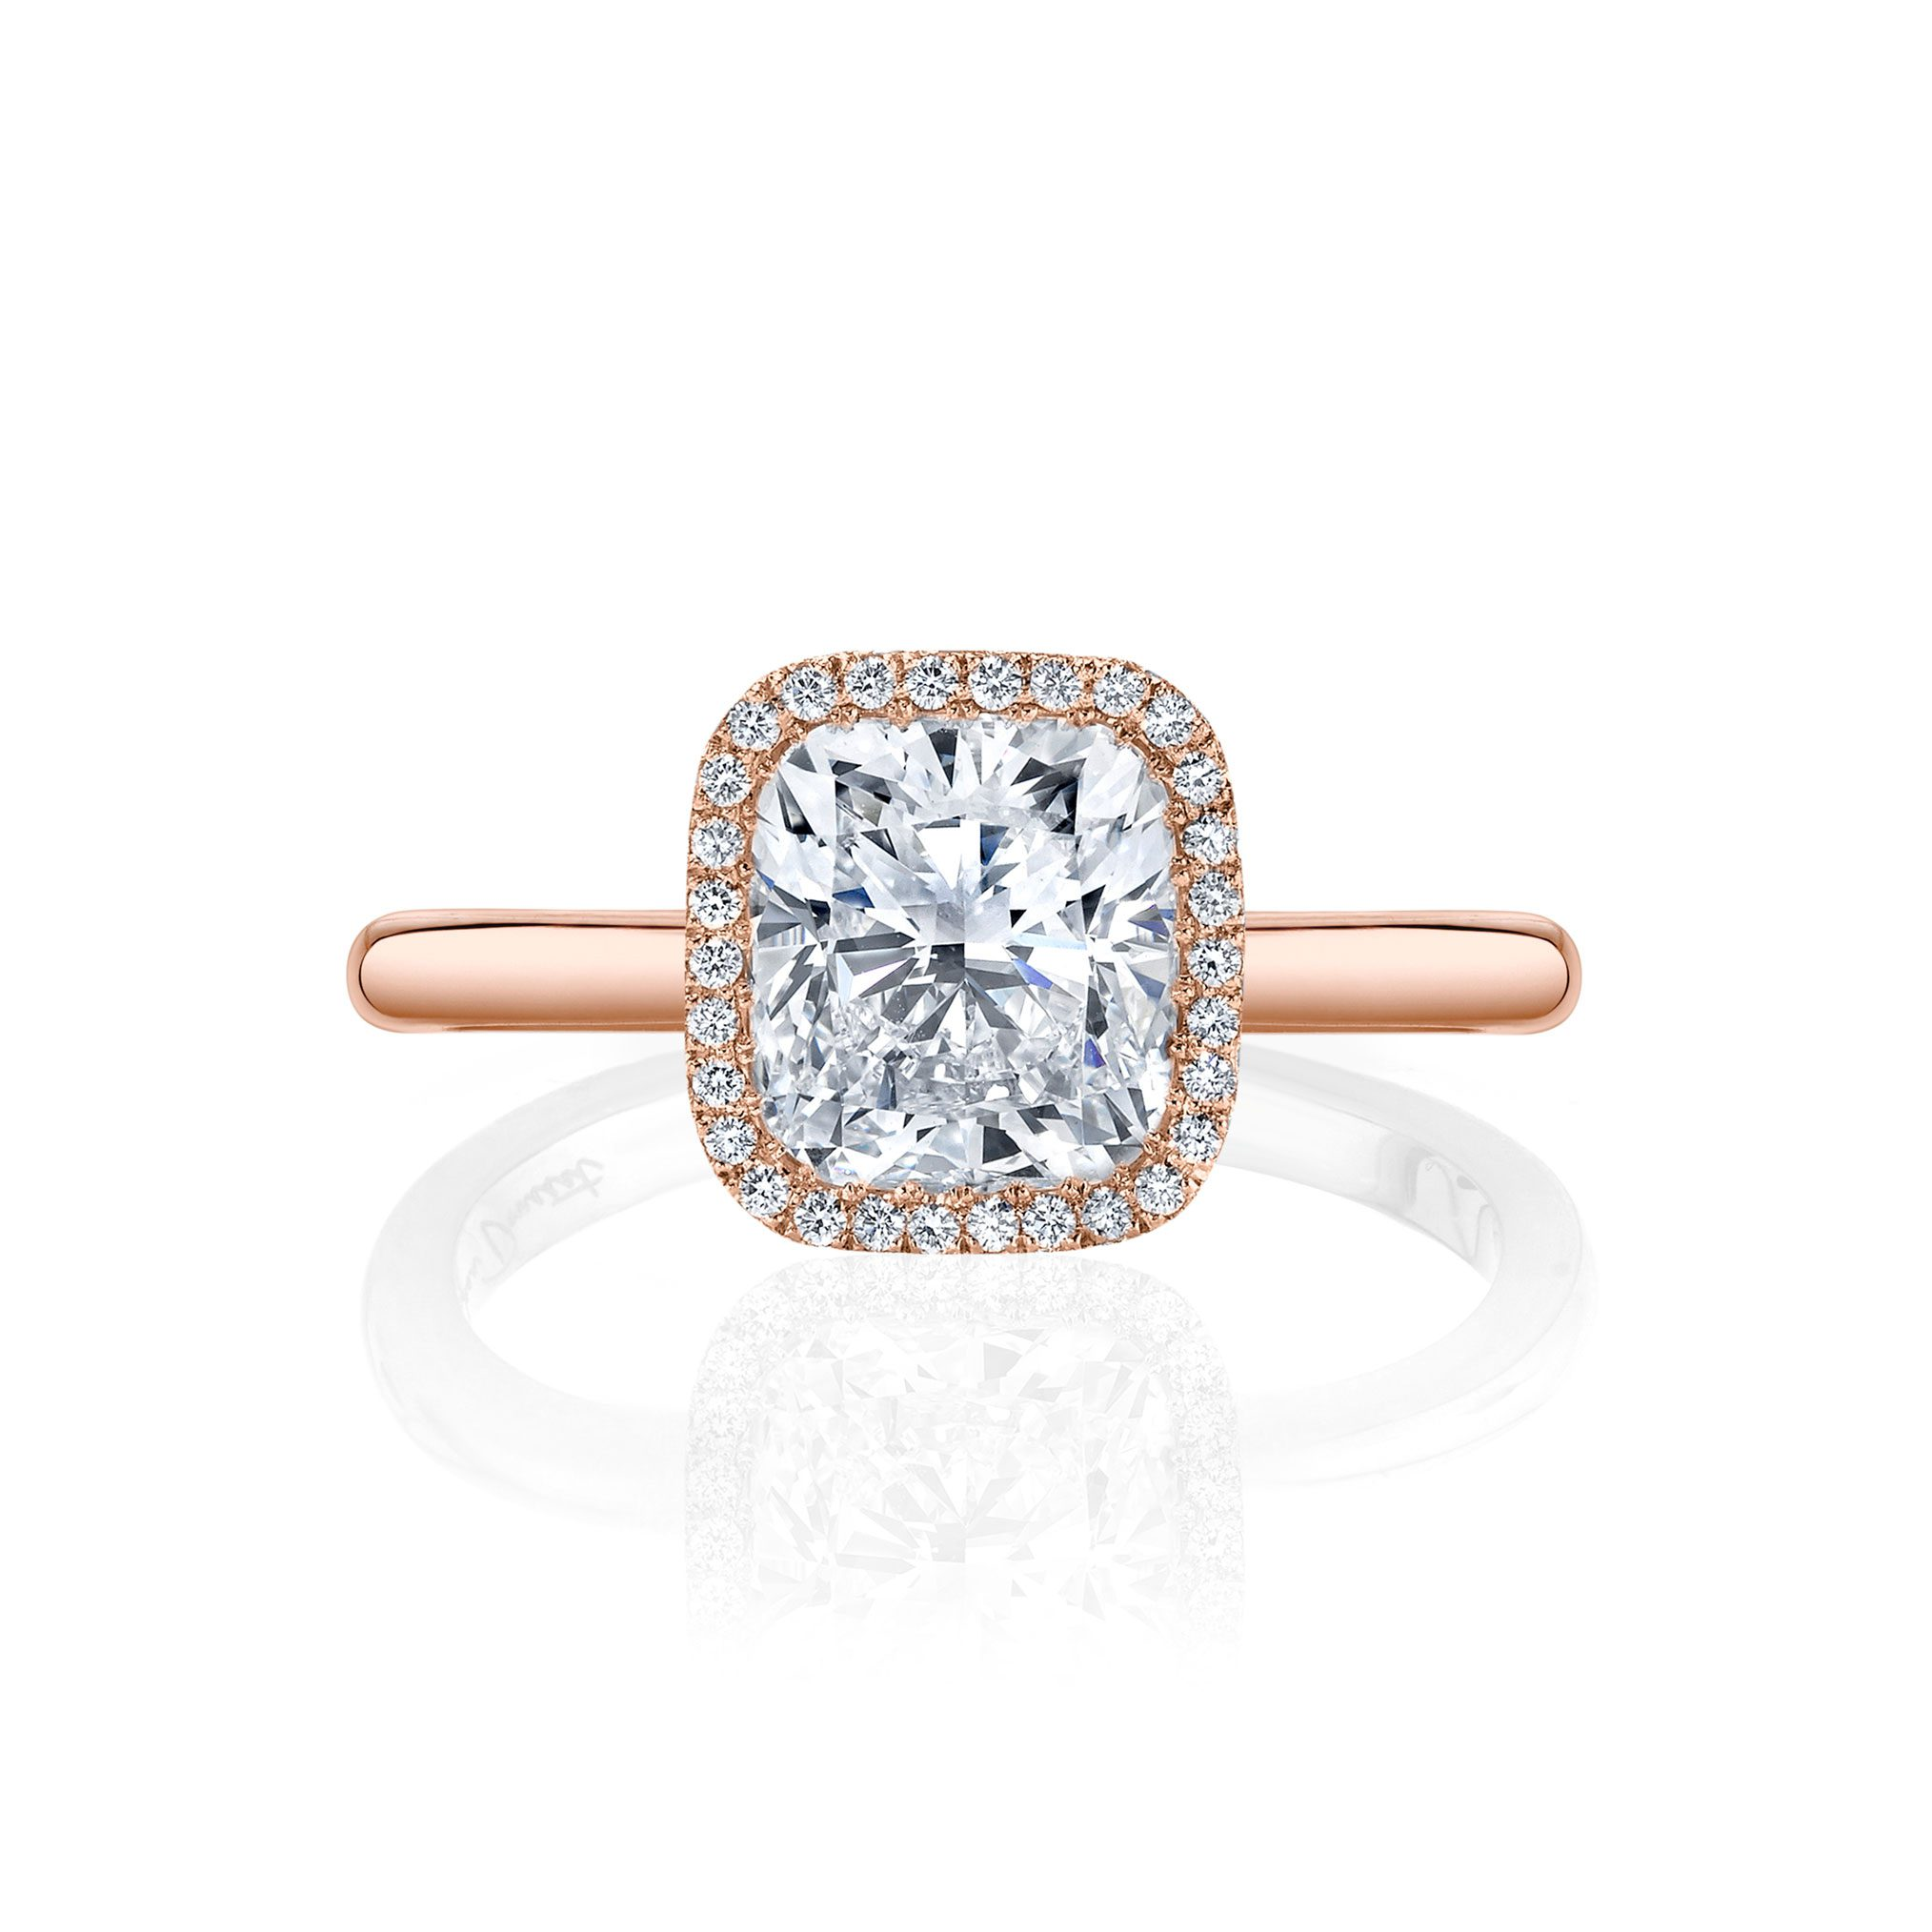 Colette Seamless Halo® Engagement Ring Cushion Cut Ring with 18k rose gold band